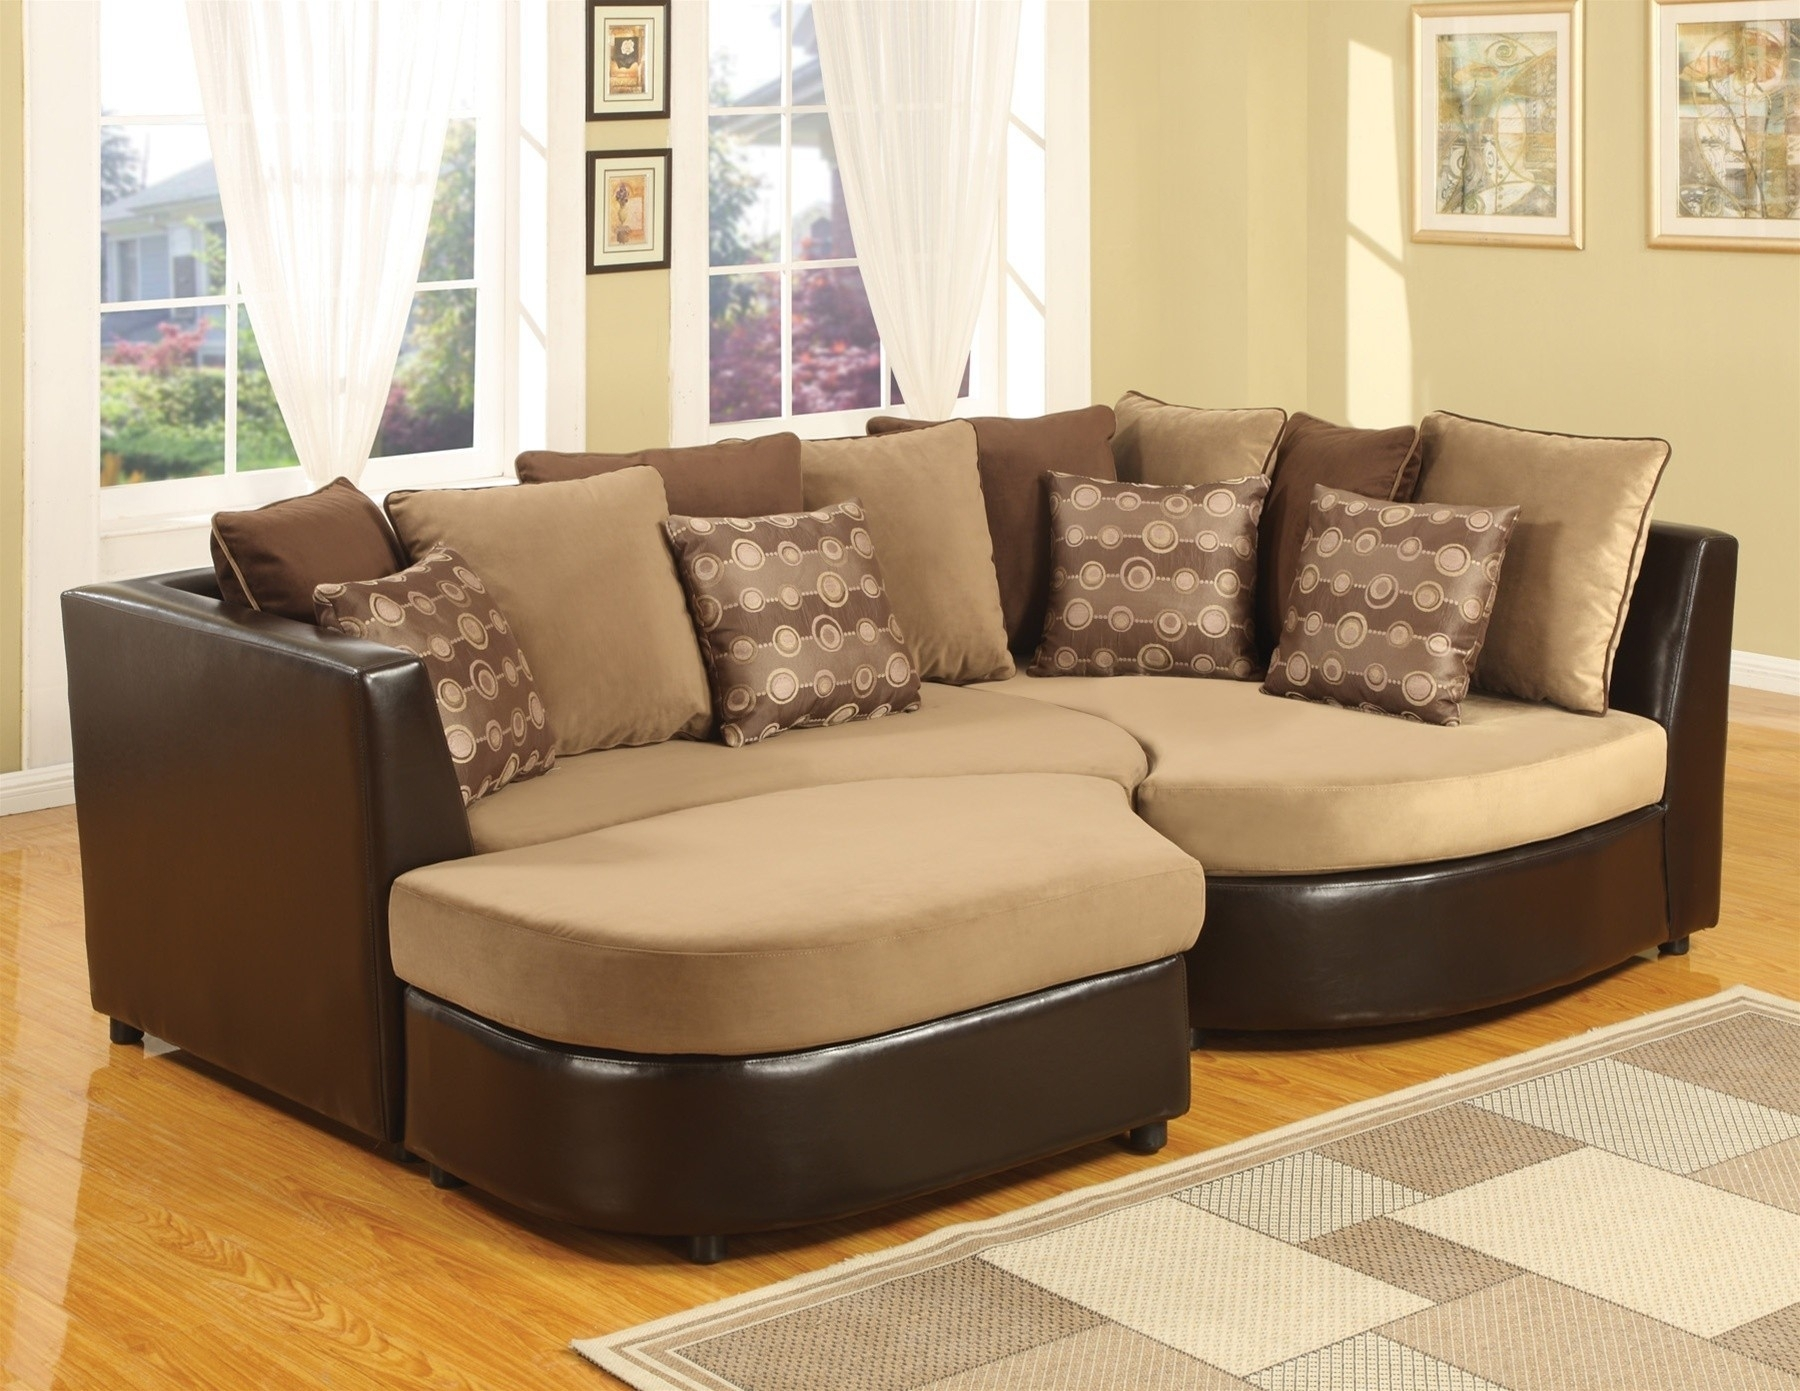 Innovative Amazon Sectional Sofas Or Leather Futon Sofa Bed As Well Pertaining To Sectional Sofas At Amazon (Image 7 of 10)